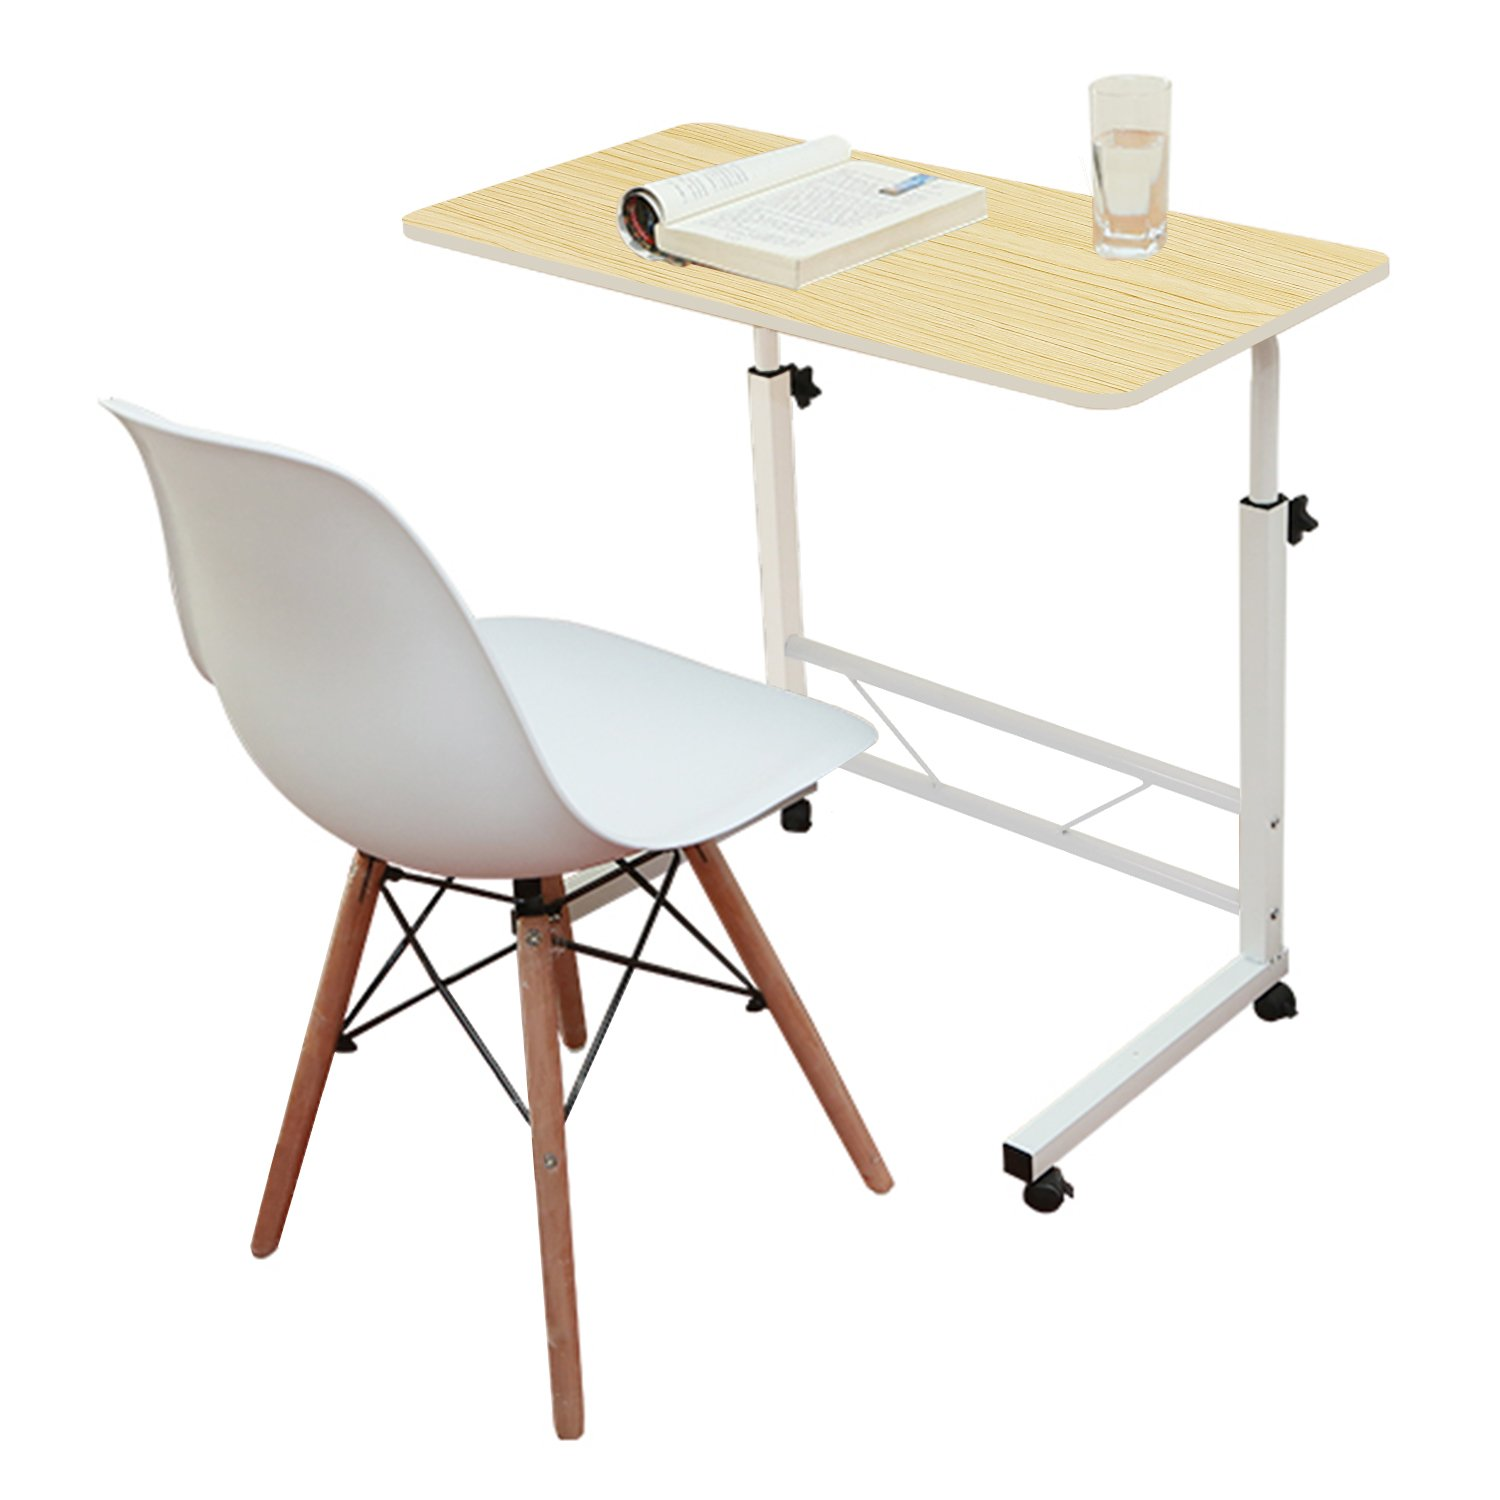 Jerry & Maggie - Adjustable Height Desk Laptop Desk Movable Bedside Table Lapdesk with 4 wheels Flexible Wooden Stand Desk Cart Tray Side Table - Light Wood Tone